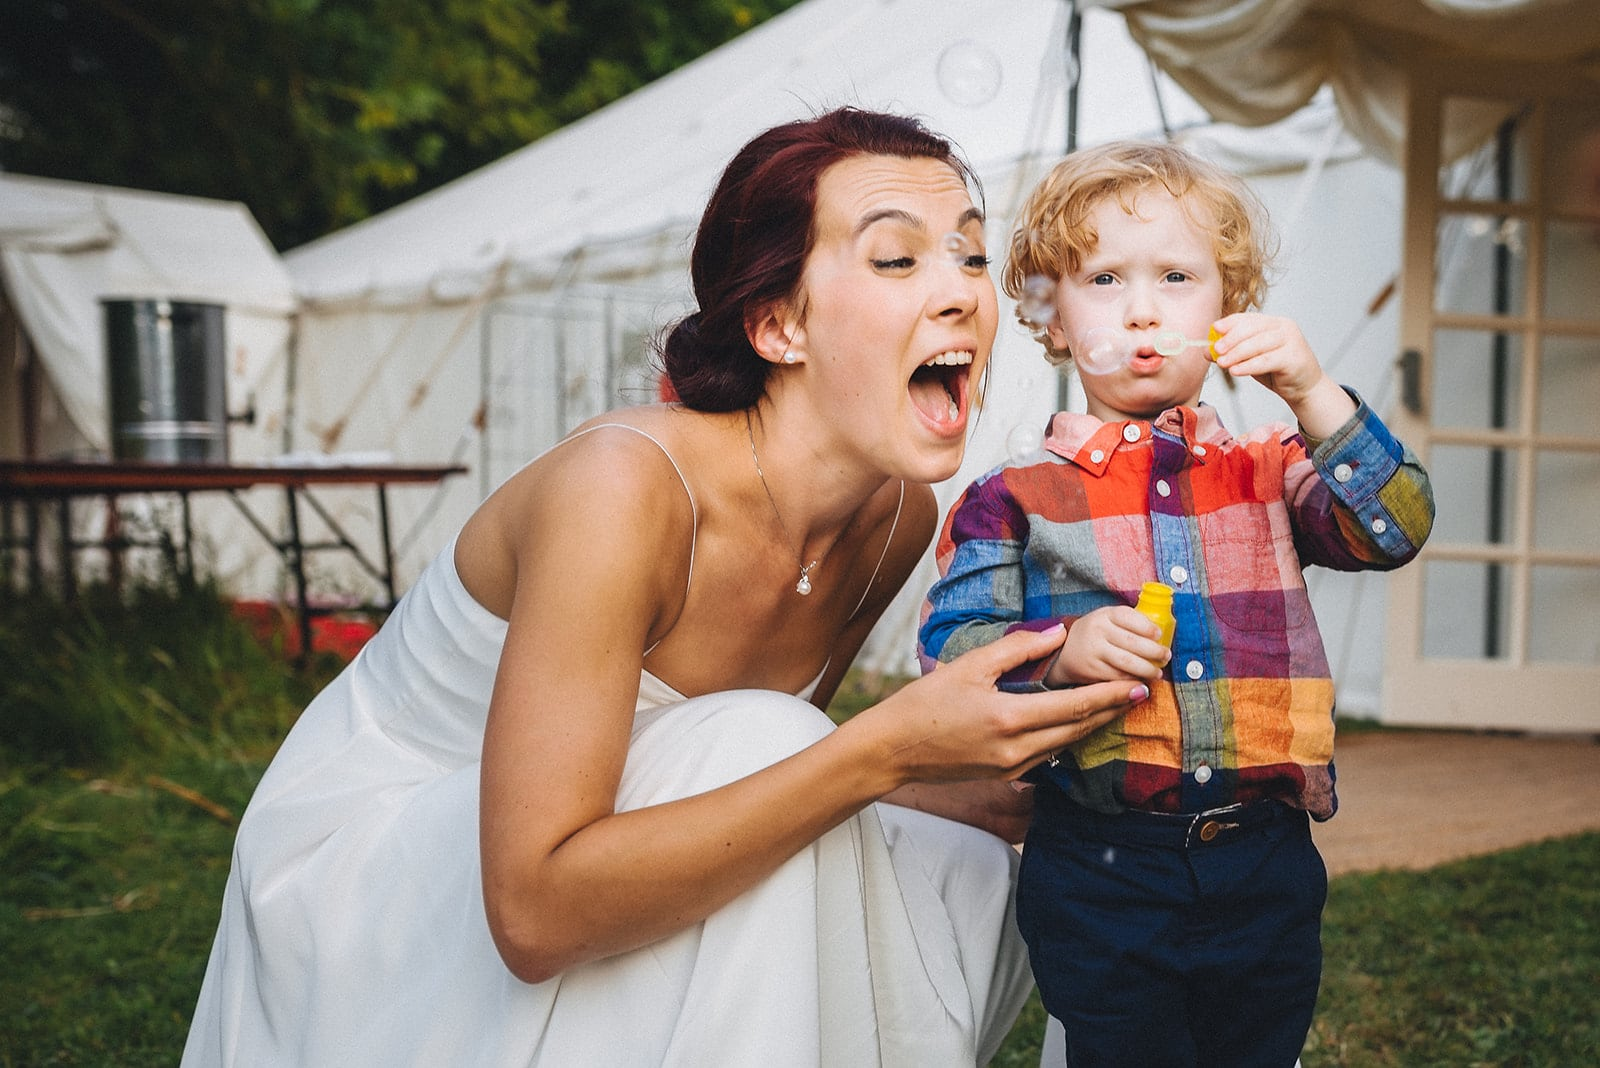 Bride blowing bubbles with a tiny wedding guest